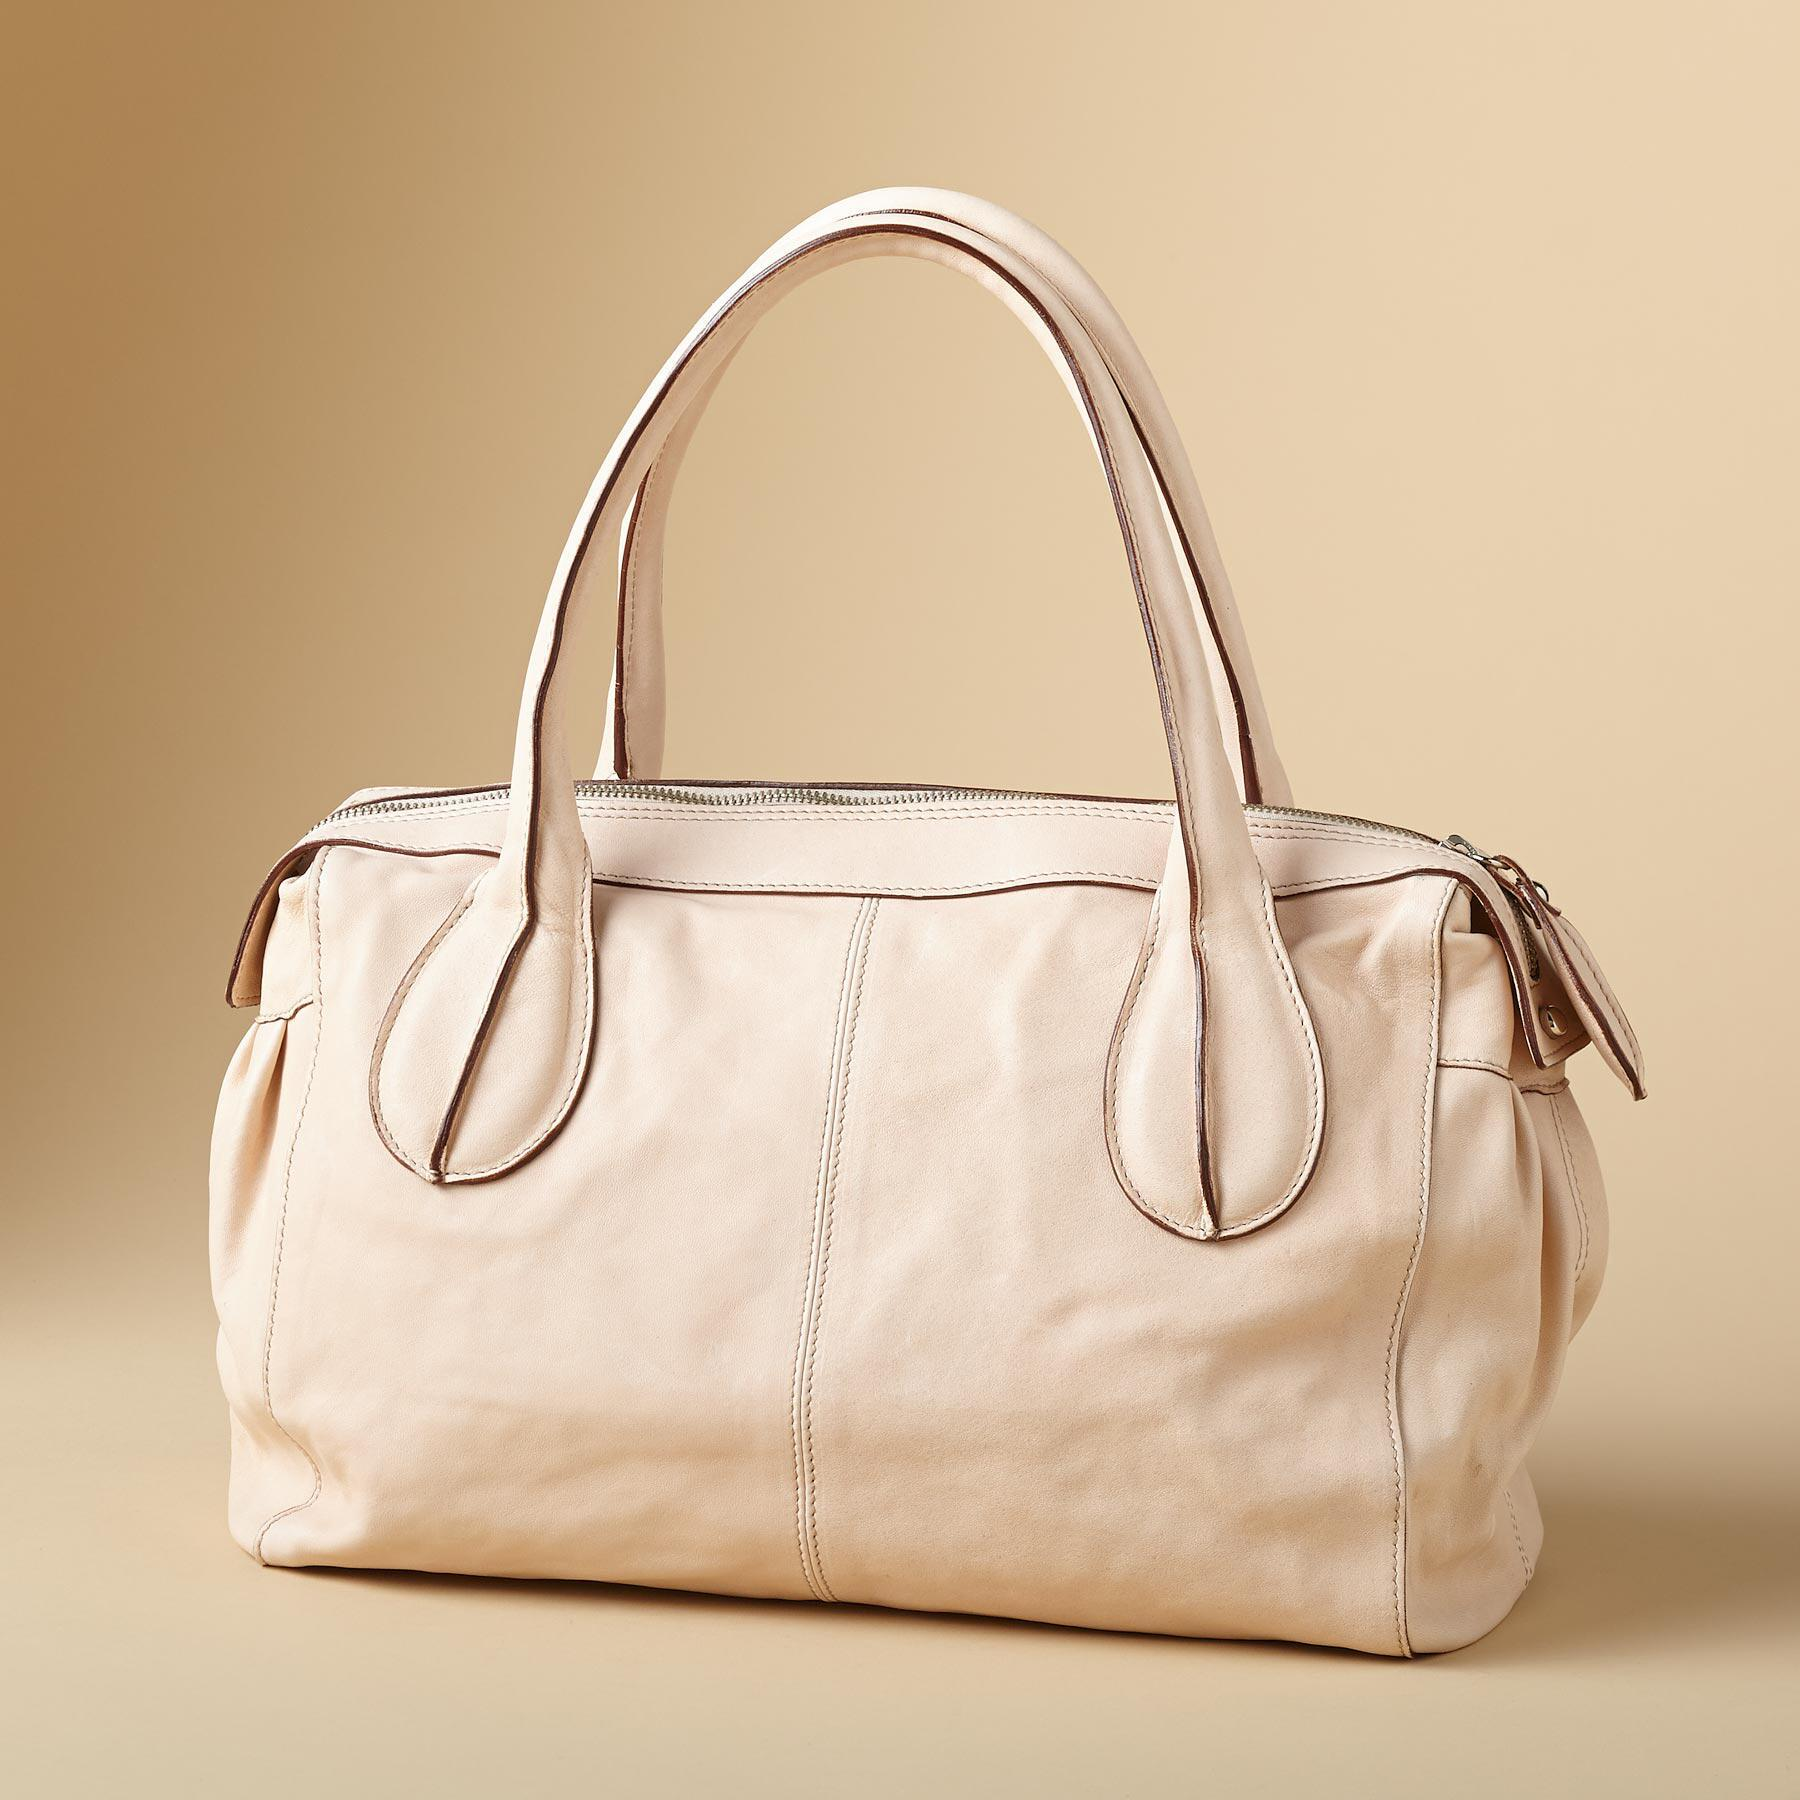 SIMPLY STYLISH HANDBAG: View 2